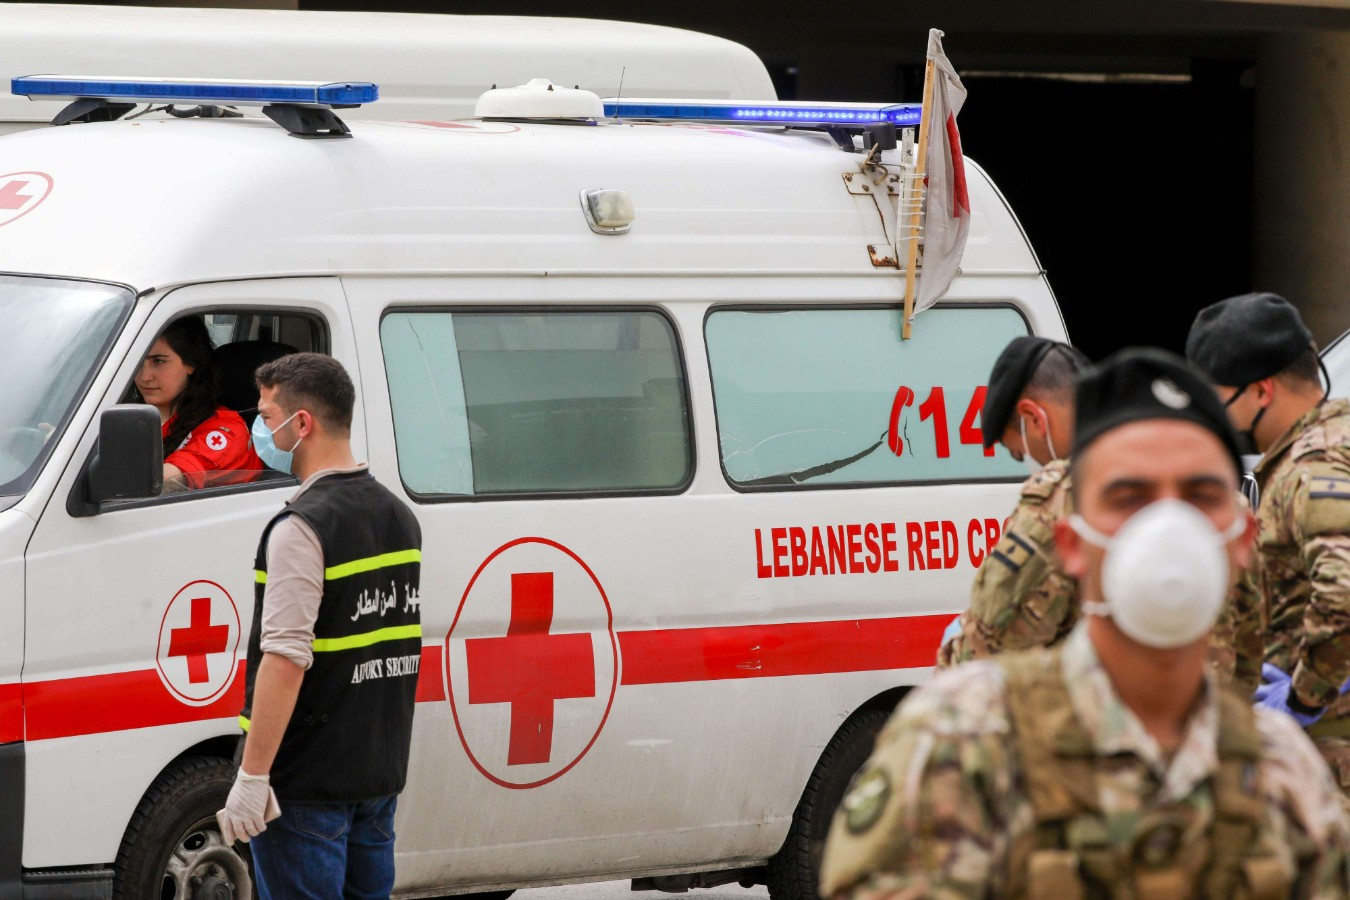 A Lebanese Red Cross vehicle arrives at the Beirut international airport, April 5. (AFP)